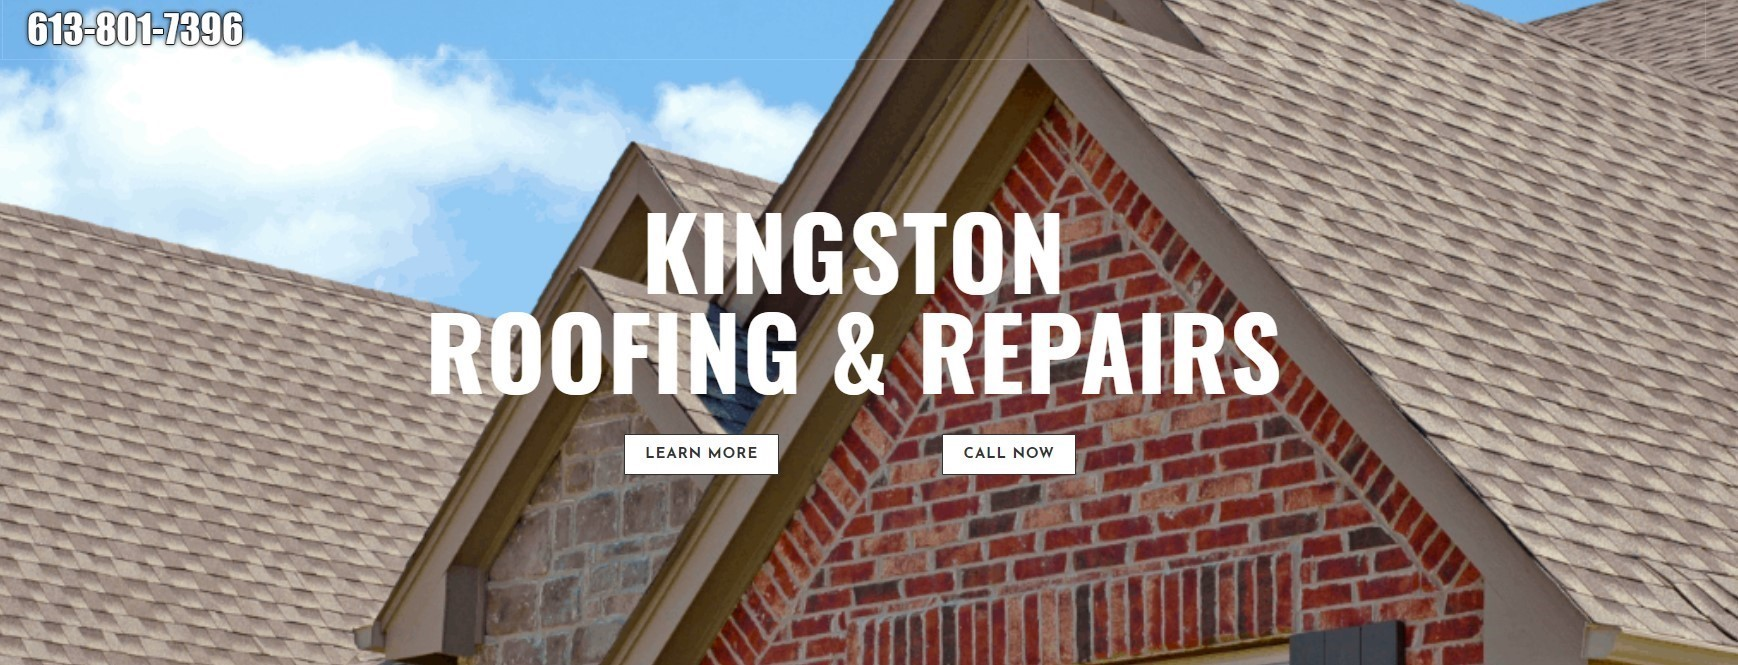 Kingston Roofing Compnay